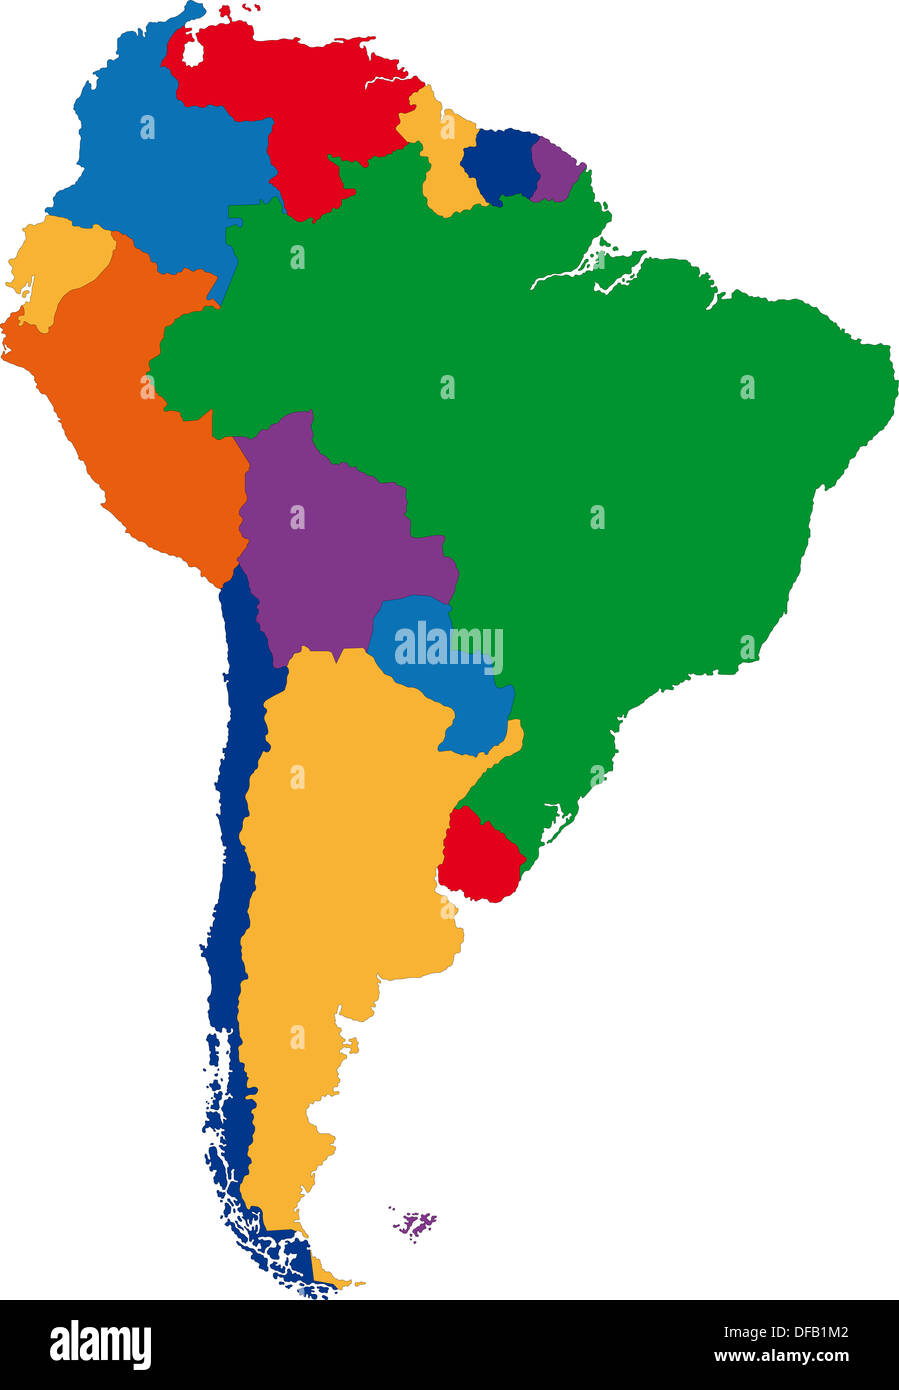 Colorful South America map Stock Photo: 61093762 - Alamy on map of panama, map of venezuela, map of travel, map of argentina, map of spain, map of playa, map of bolivia, map of colombia, map of buenos aires, map of costa rica, map of africa, map of europe, map of sudamerica, map of las antillas, map of barbados, map of france, map of paraguay, map of peru, map of ecuador, map of australia,